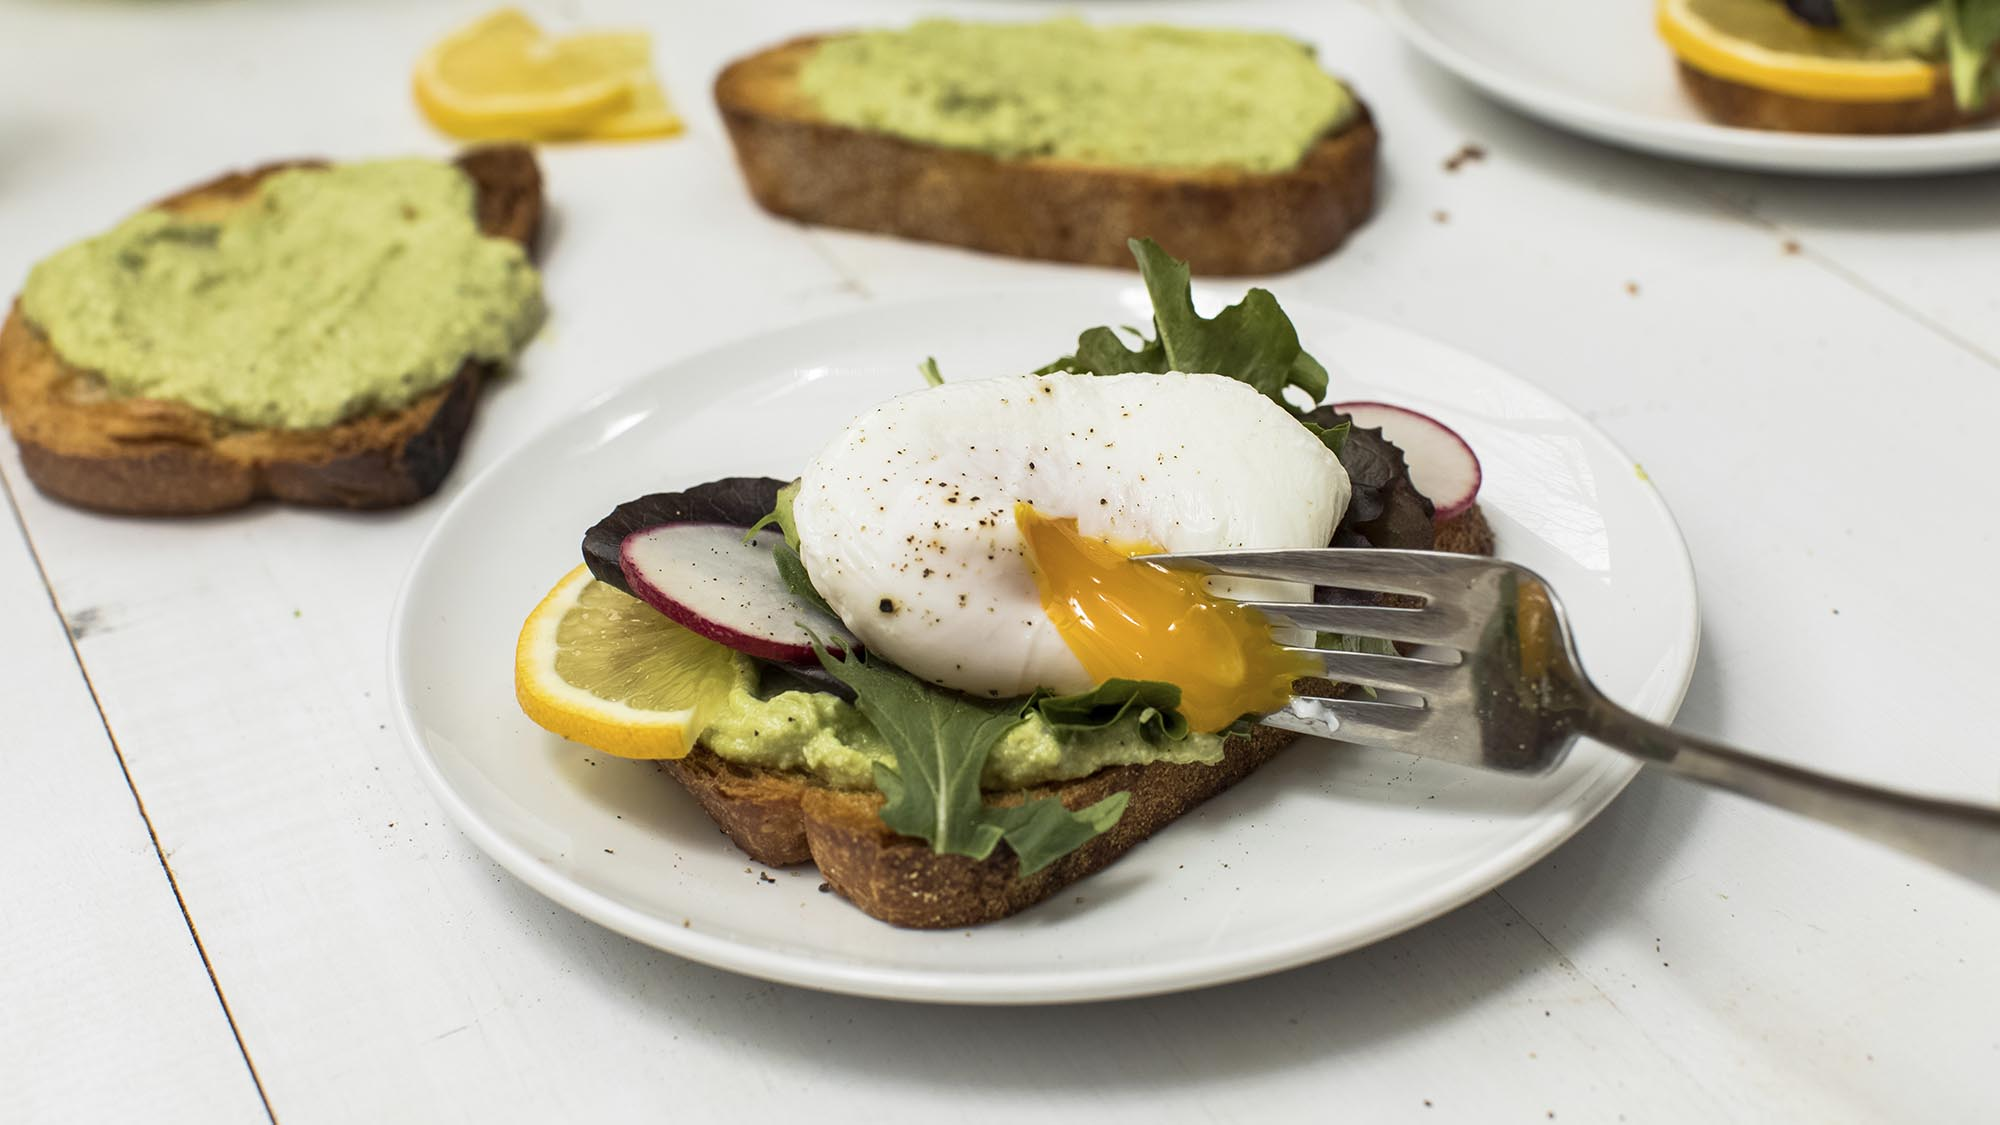 McCormick Avocado Ricotta Toast with Poached Eggs